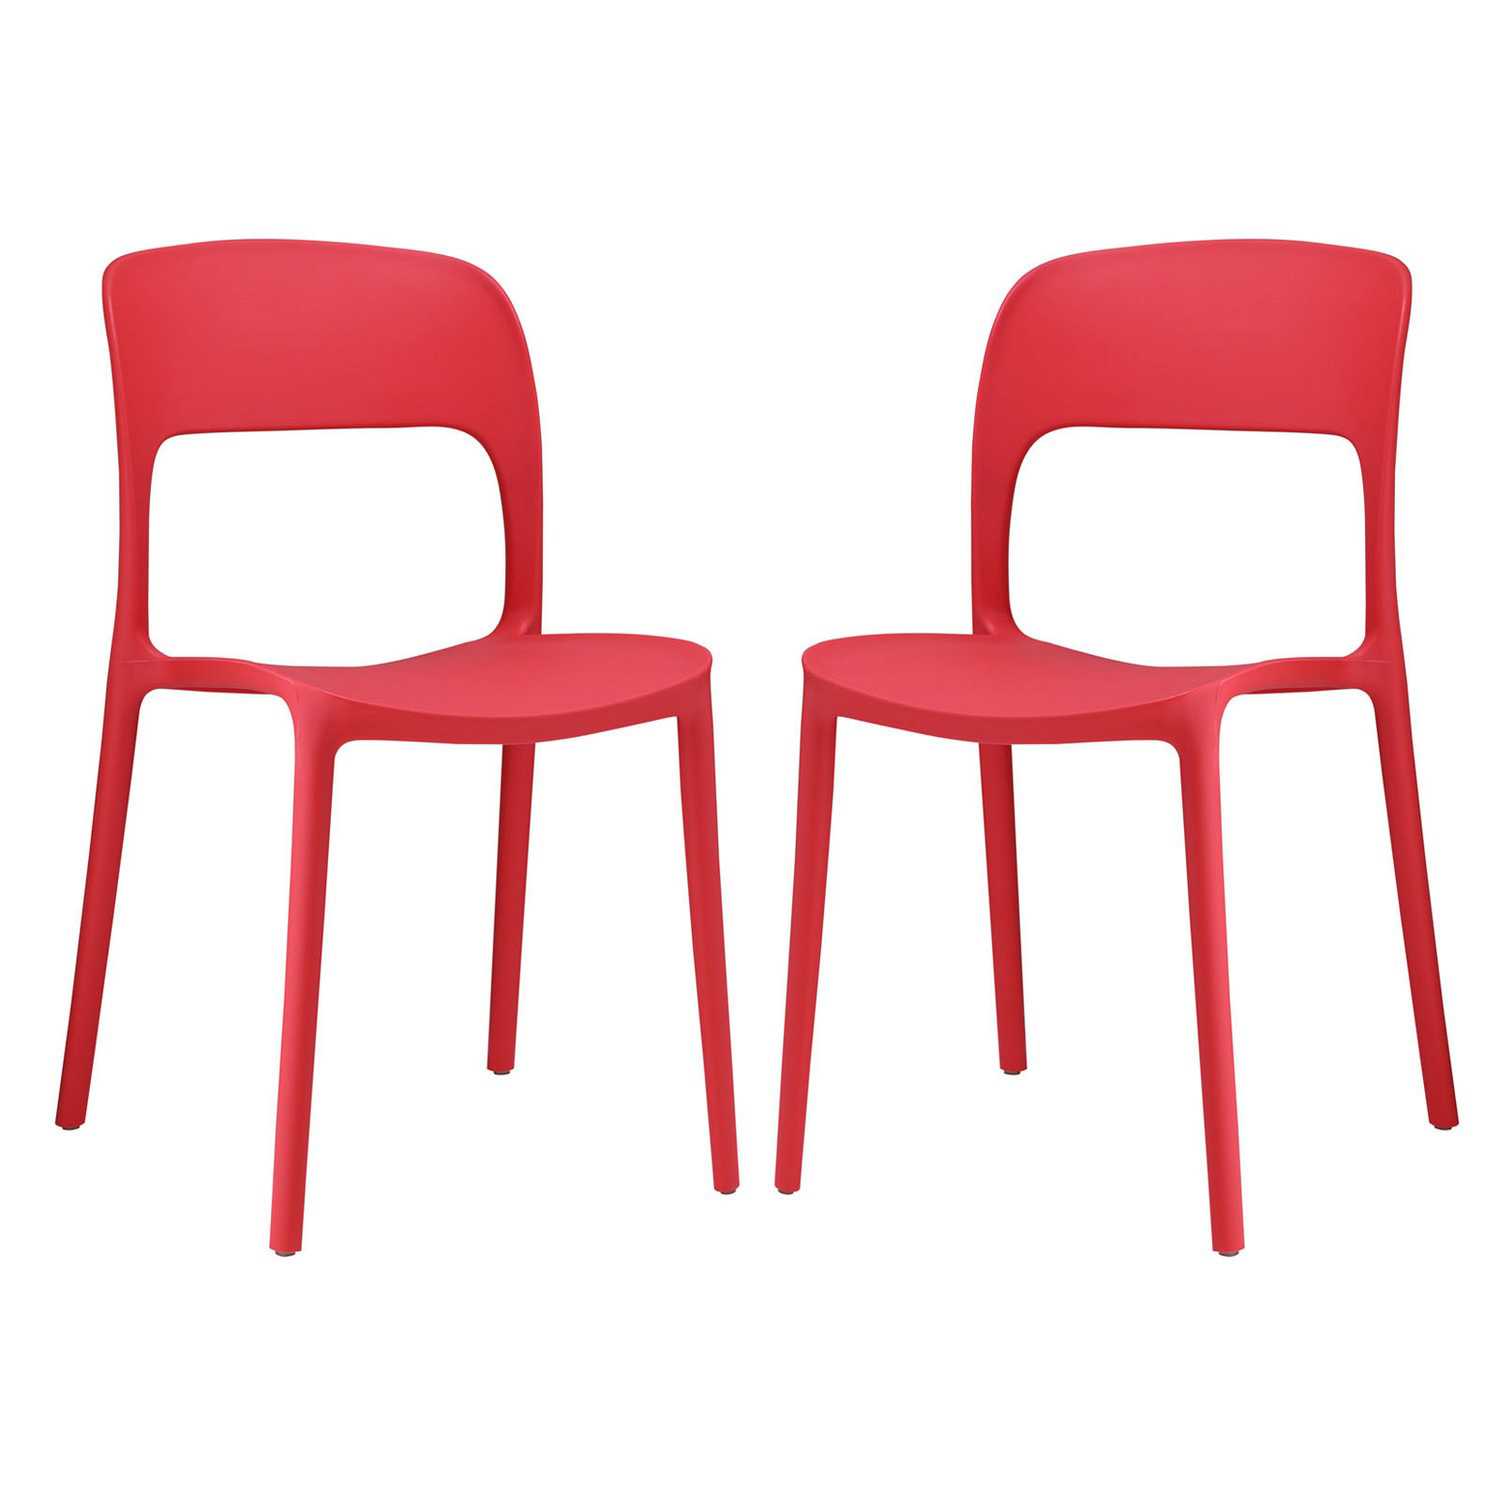 Modway Hop Dining Chair - Set of 2 - Red